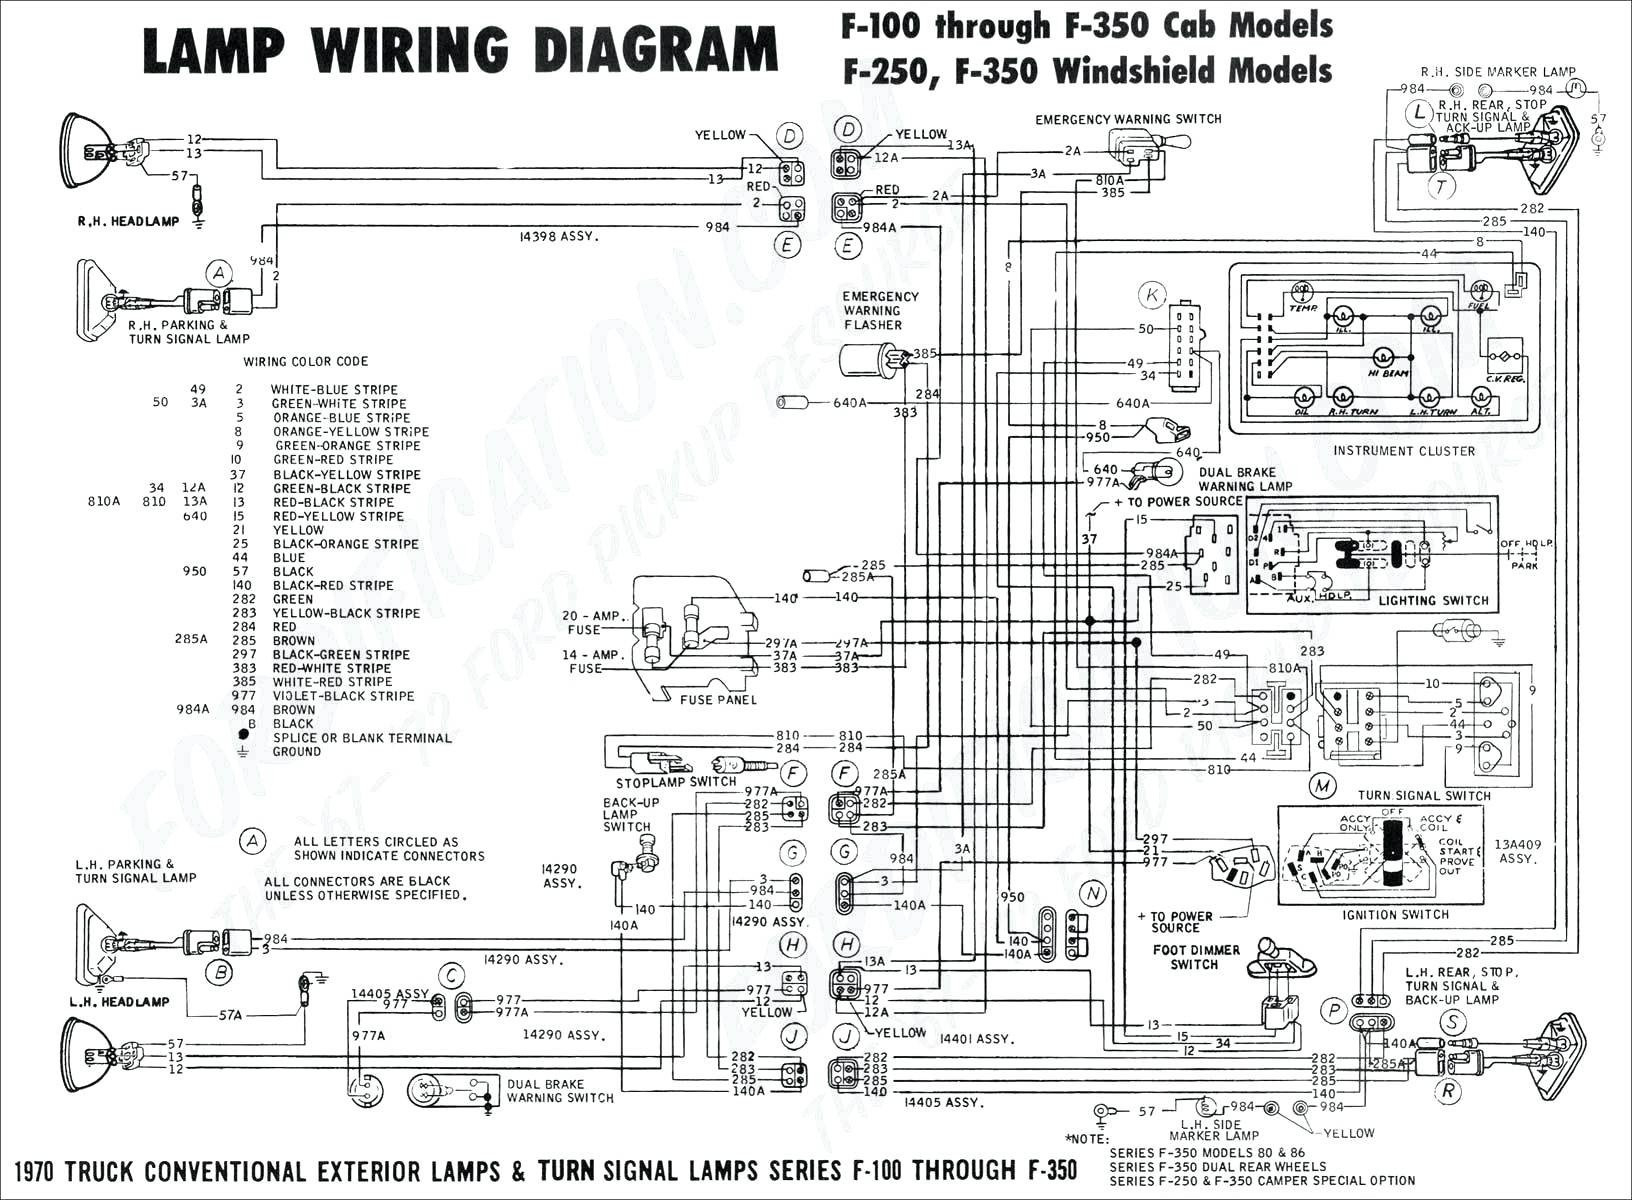 2001 Dodge Durango Wiring Diagram Unique Dodge Ram Trailer Wiring - Trailer Wiring Diagram Dodge Ram